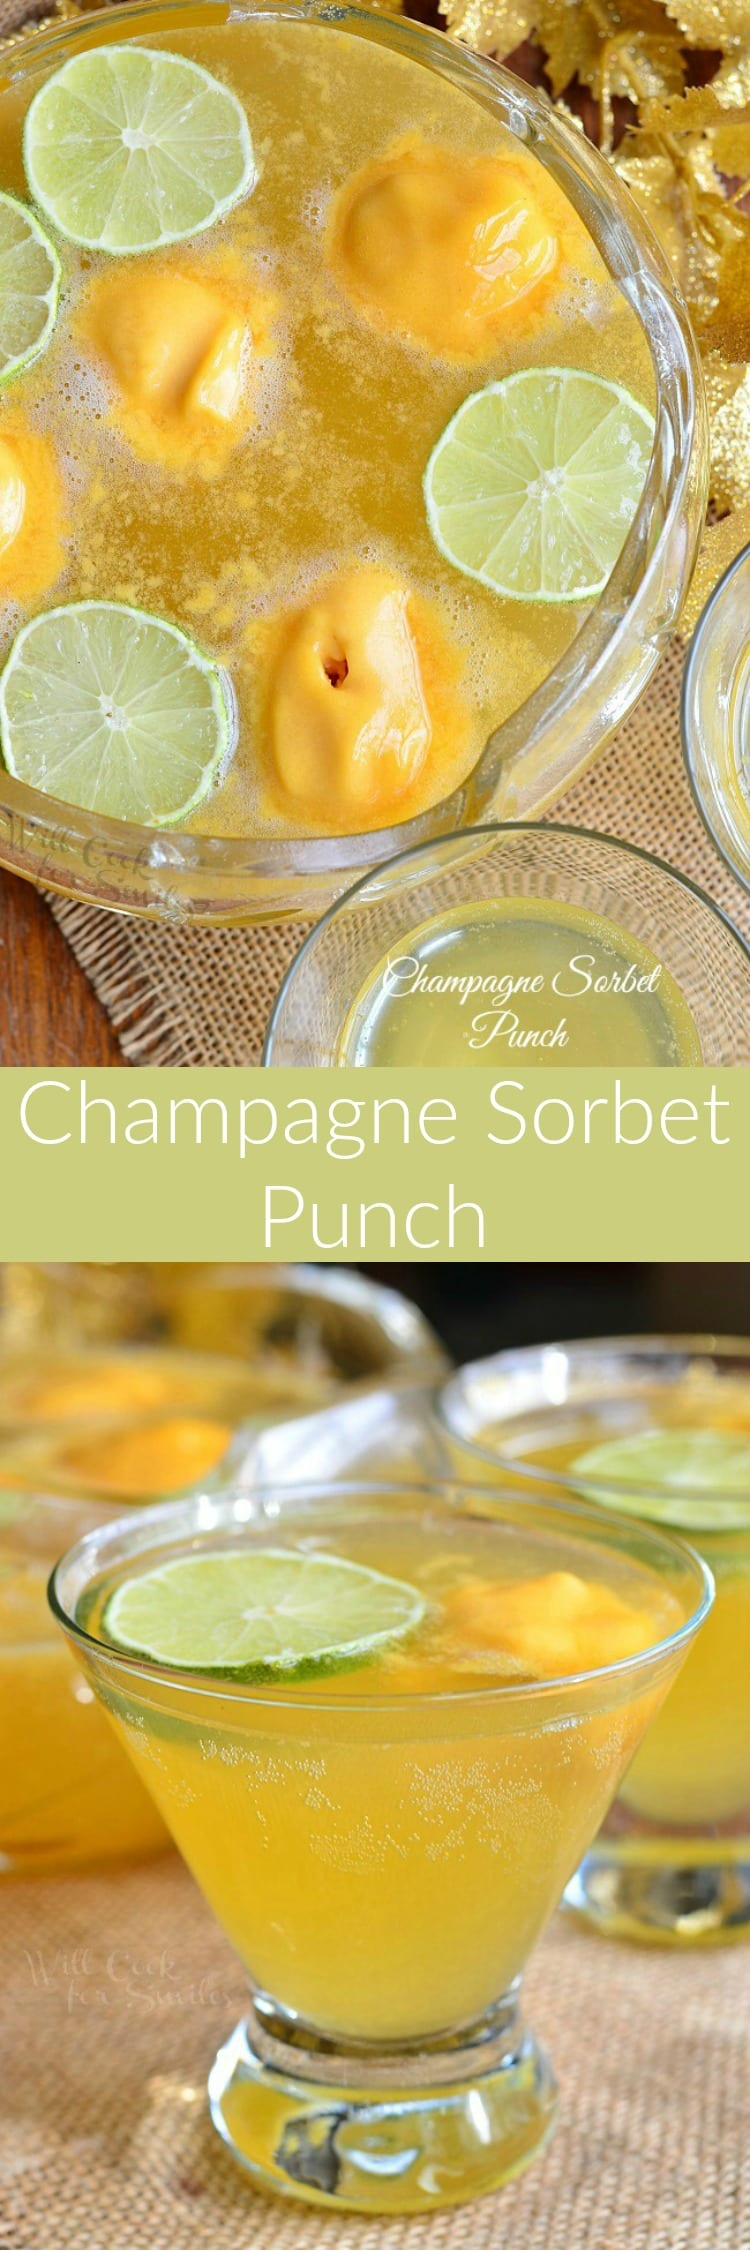 Champagne Sorbet Punch.  Amazing Champagne Punch made with addition of sorbet, simple syrup and flavored vodka. Very simple party cocktail that will bring a festive touch to any table.